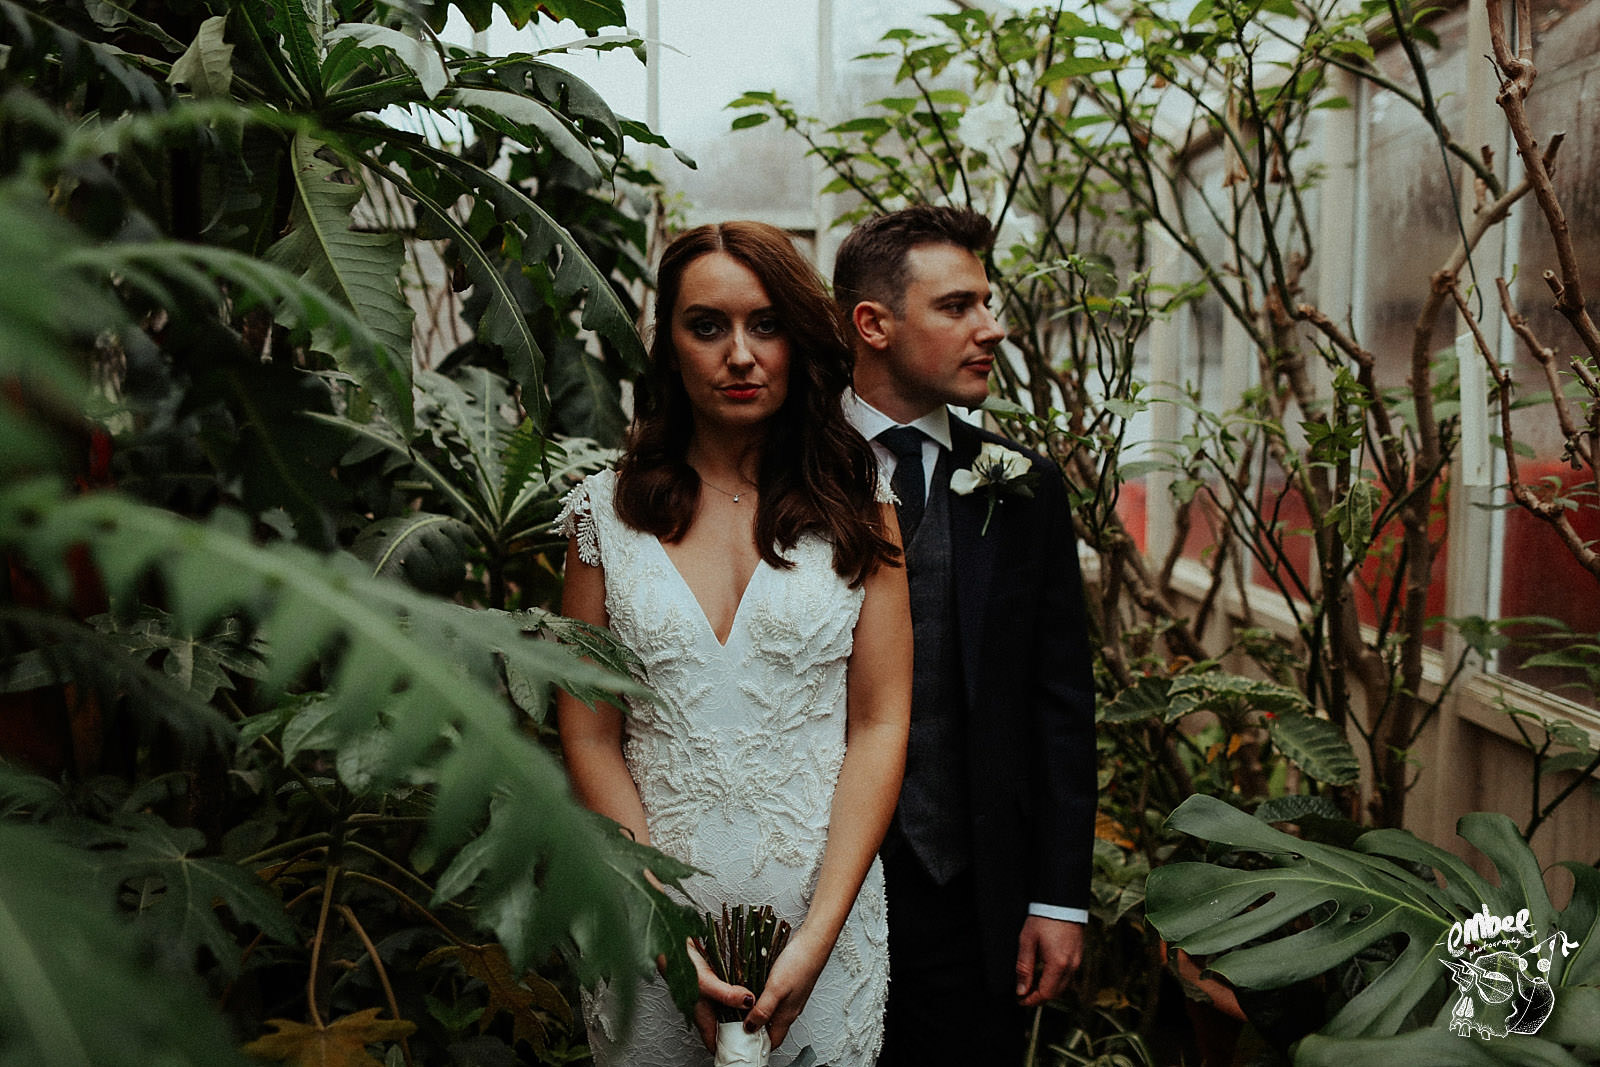 artistic shot of the bride and groom in the abbey wood estate greenhouse